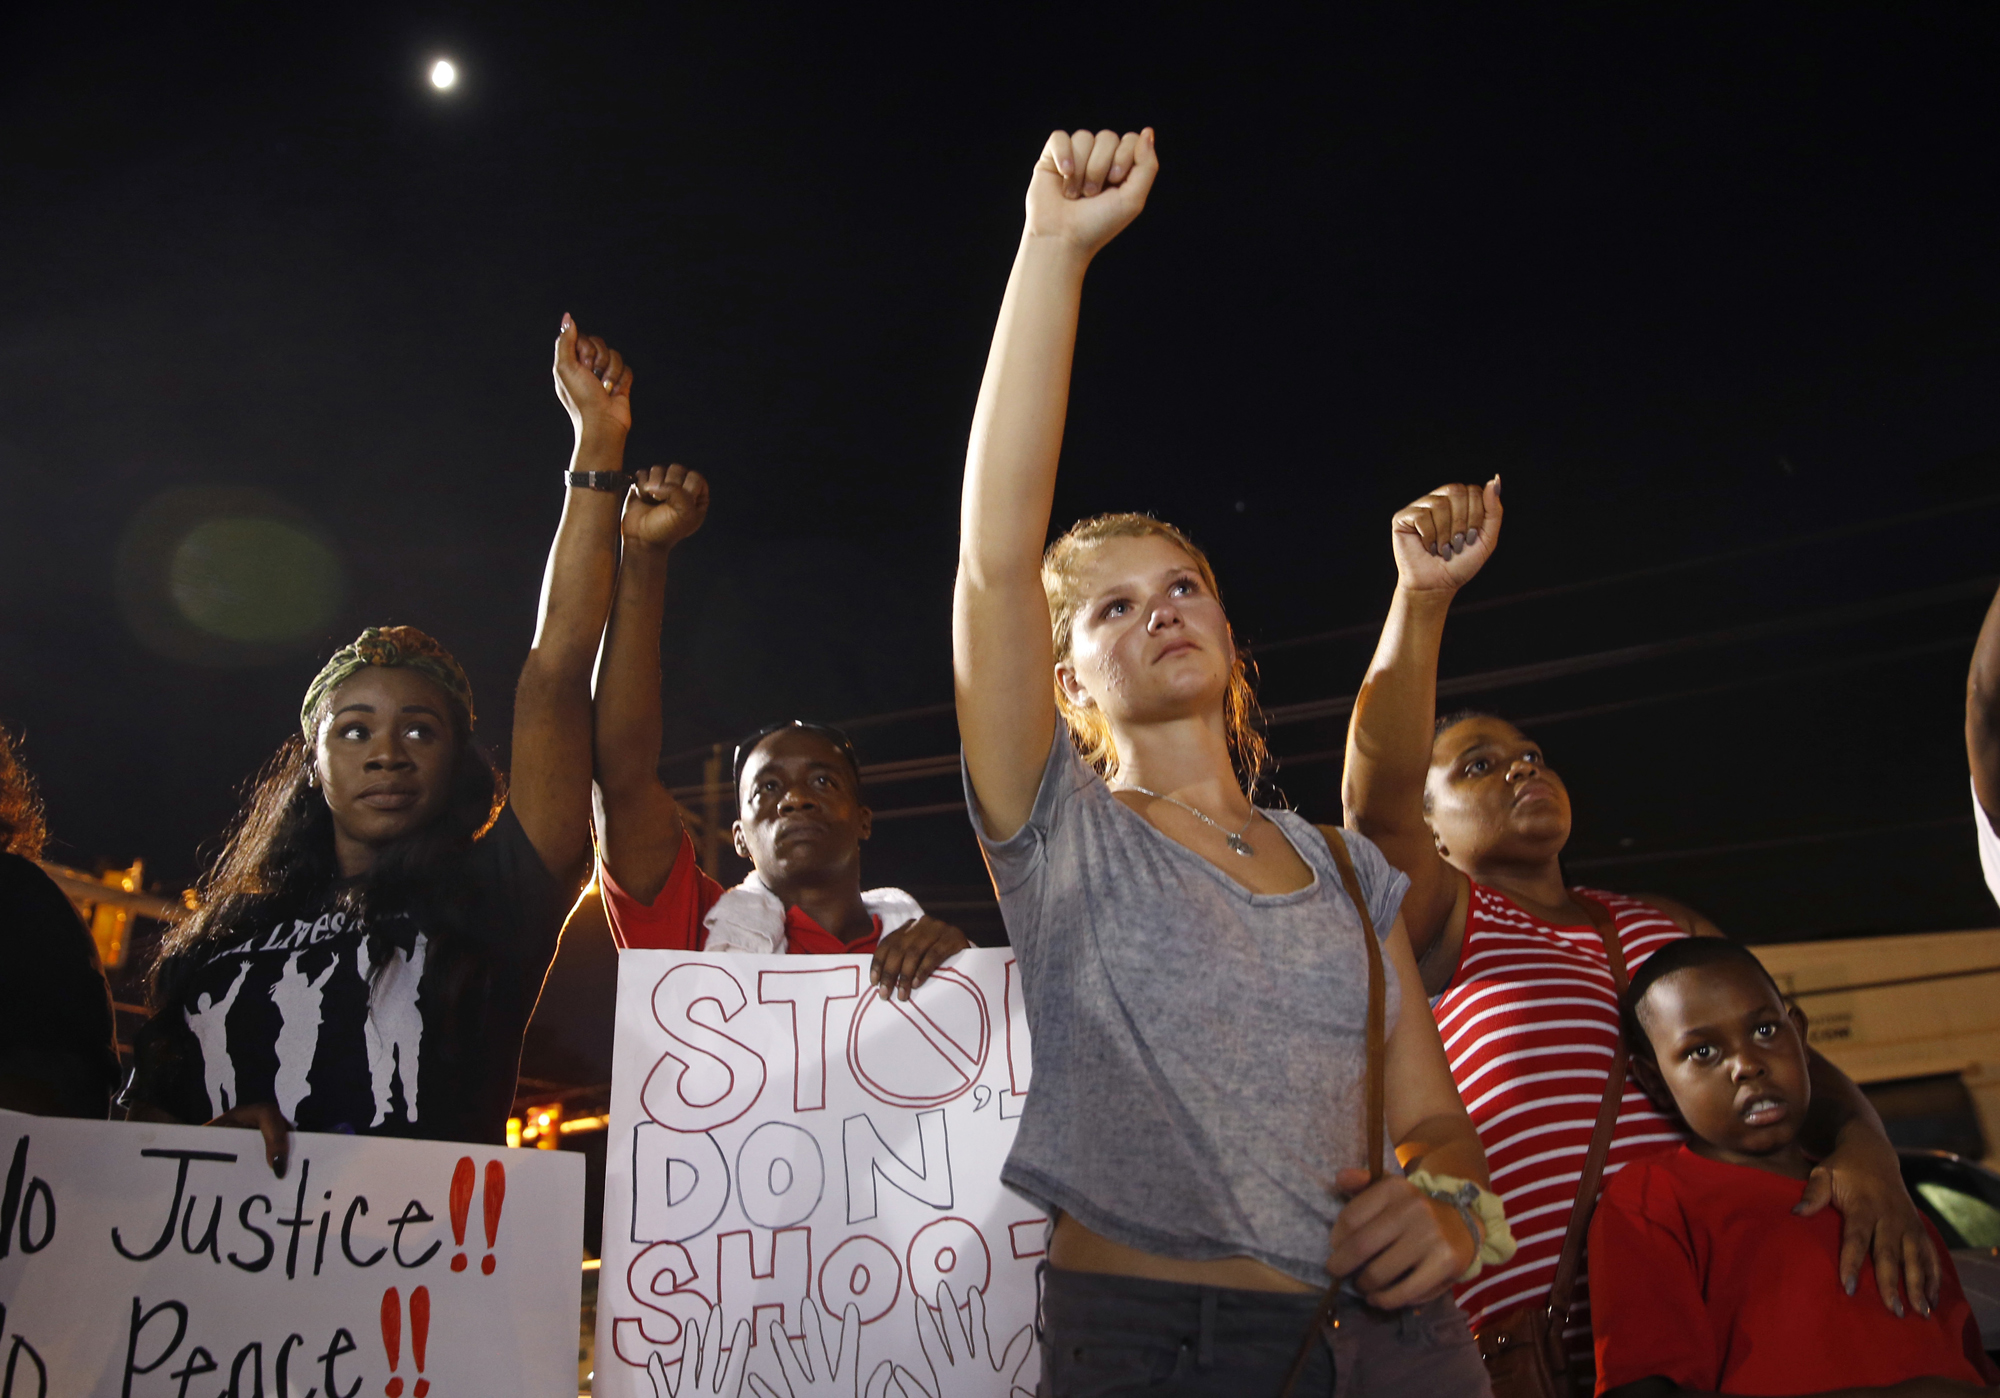 Ella Carr, center, of Austin, Texas, puts her fist up during live music at a night rally in honor of Alton Sterling, outside the Triple S Food mart in Baton Rouge, La., Monday, July 11, 2016. Sterling was shot and killed last Tuesday by Baton Rouge police while selling CD's outside the convenience store.